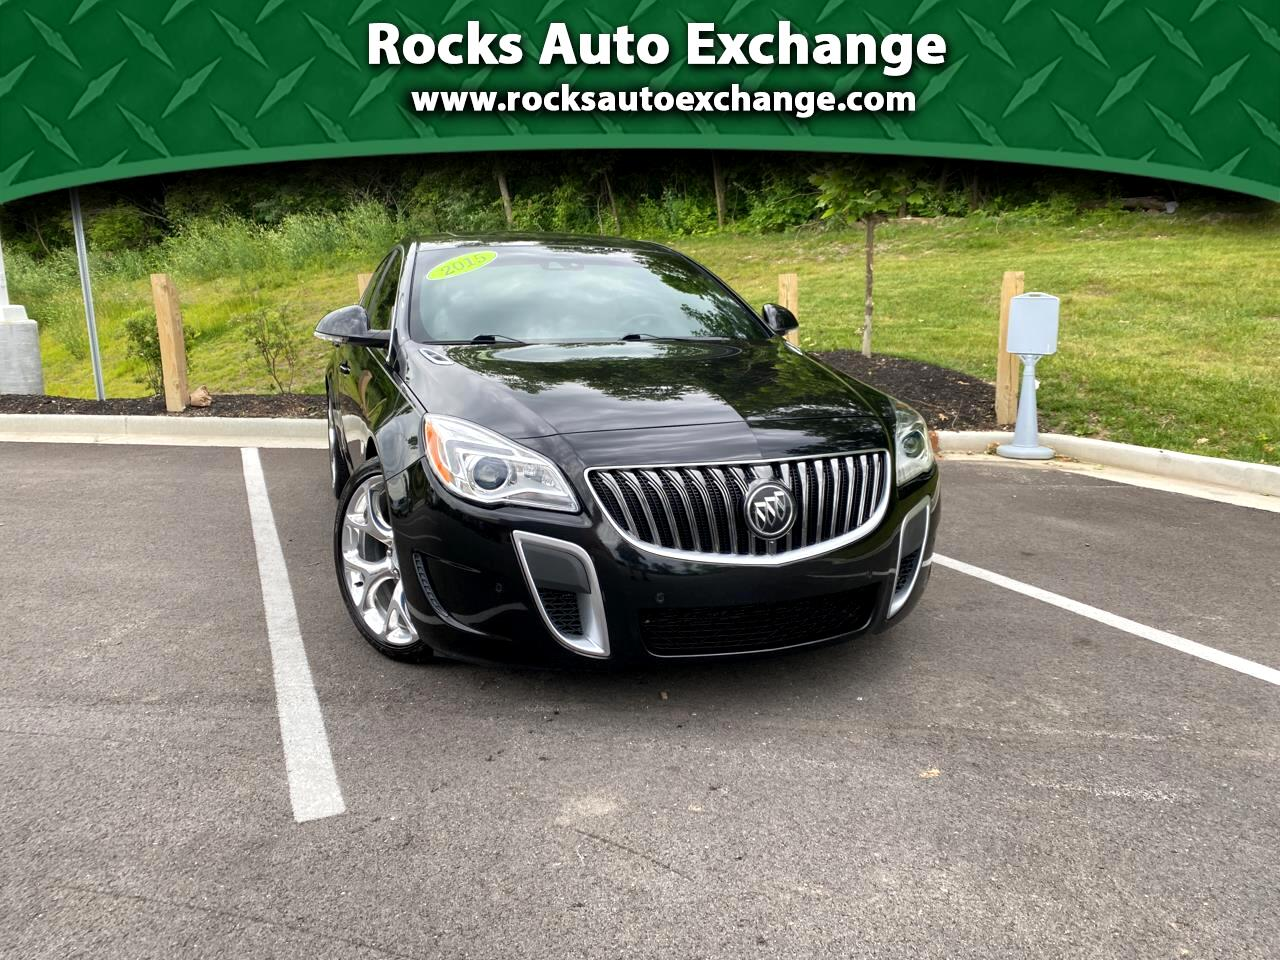 Buick Regal 4dr Sdn GS FWD 2015